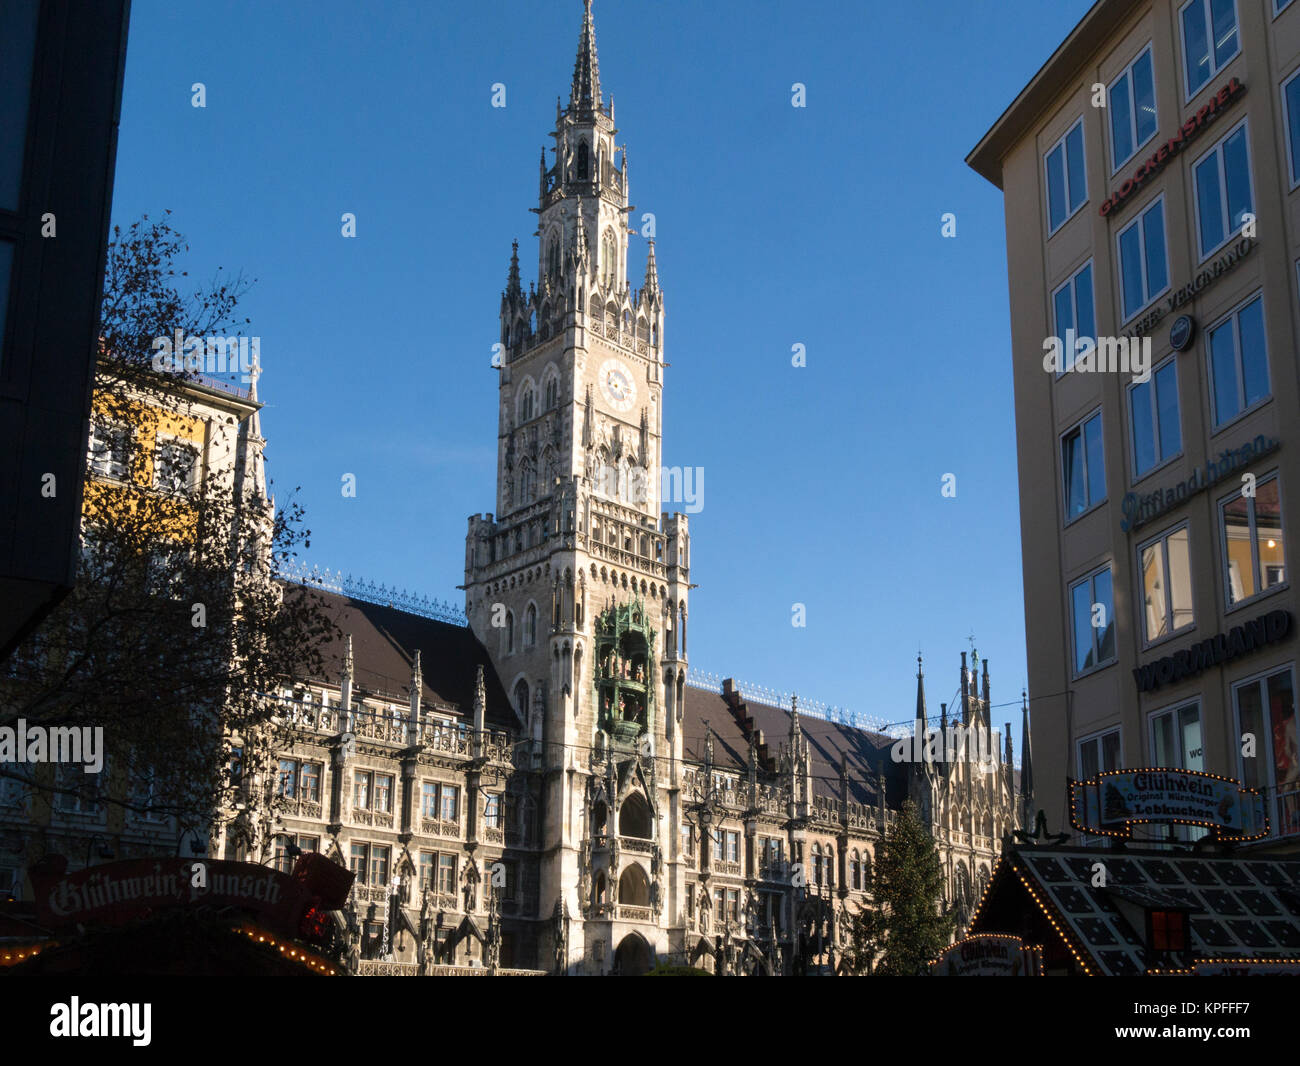 Christmas market stalls in front of Rathaus New Town Hall in Marienplatz Munich Bavaria Germany EU - Stock Image